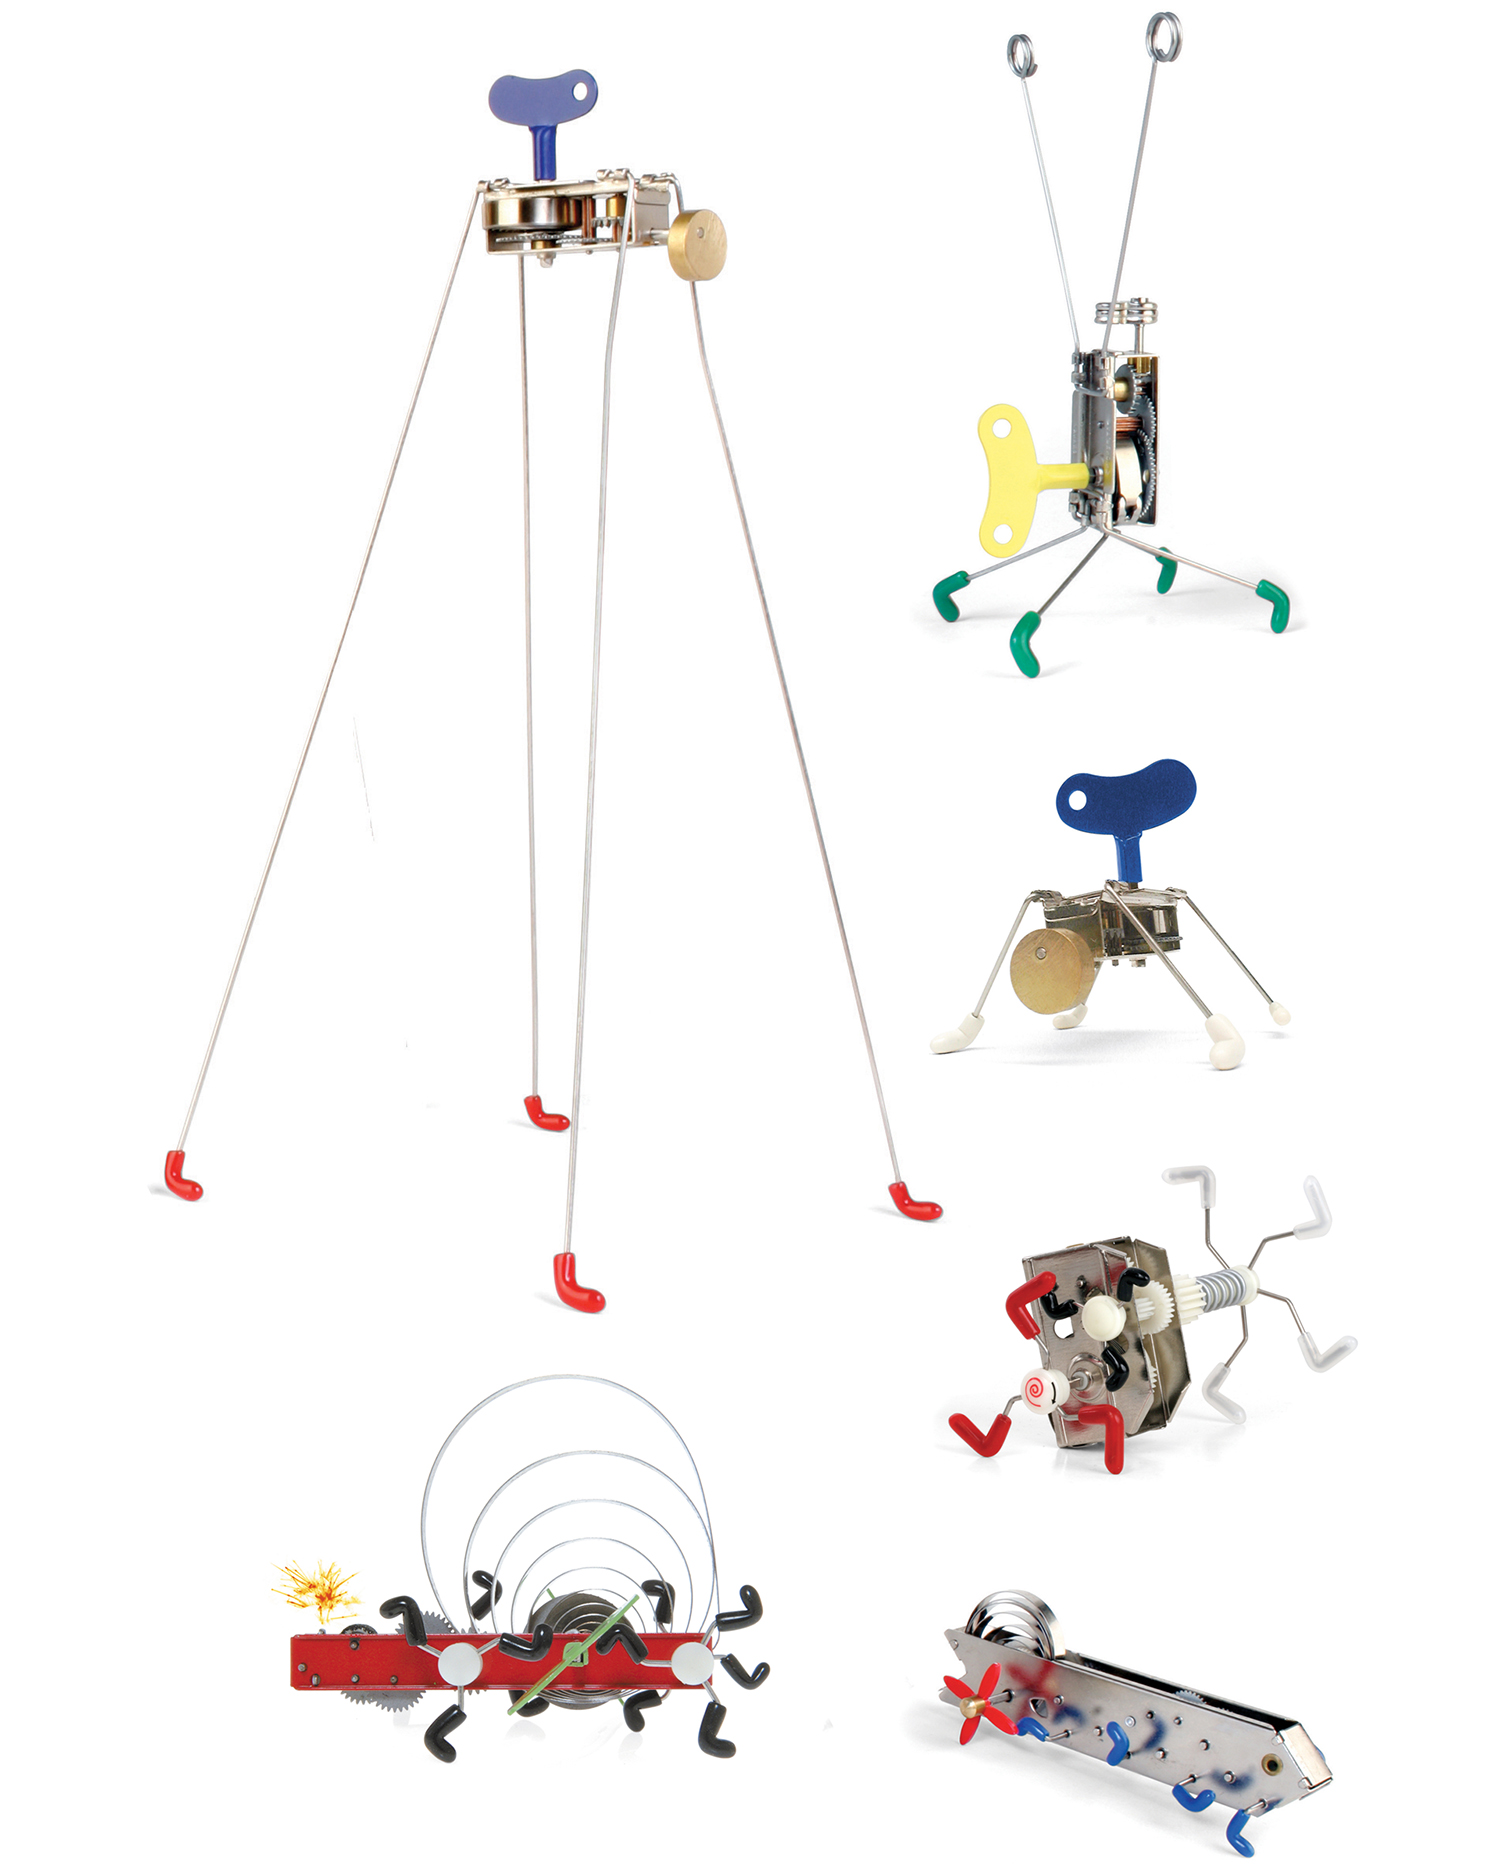 Curator: its a mechanical victory against digital. it is simple fun that will bring a laugh to anyone. - A series of mechanical wind up toys that jump and wobble with amazing energy.